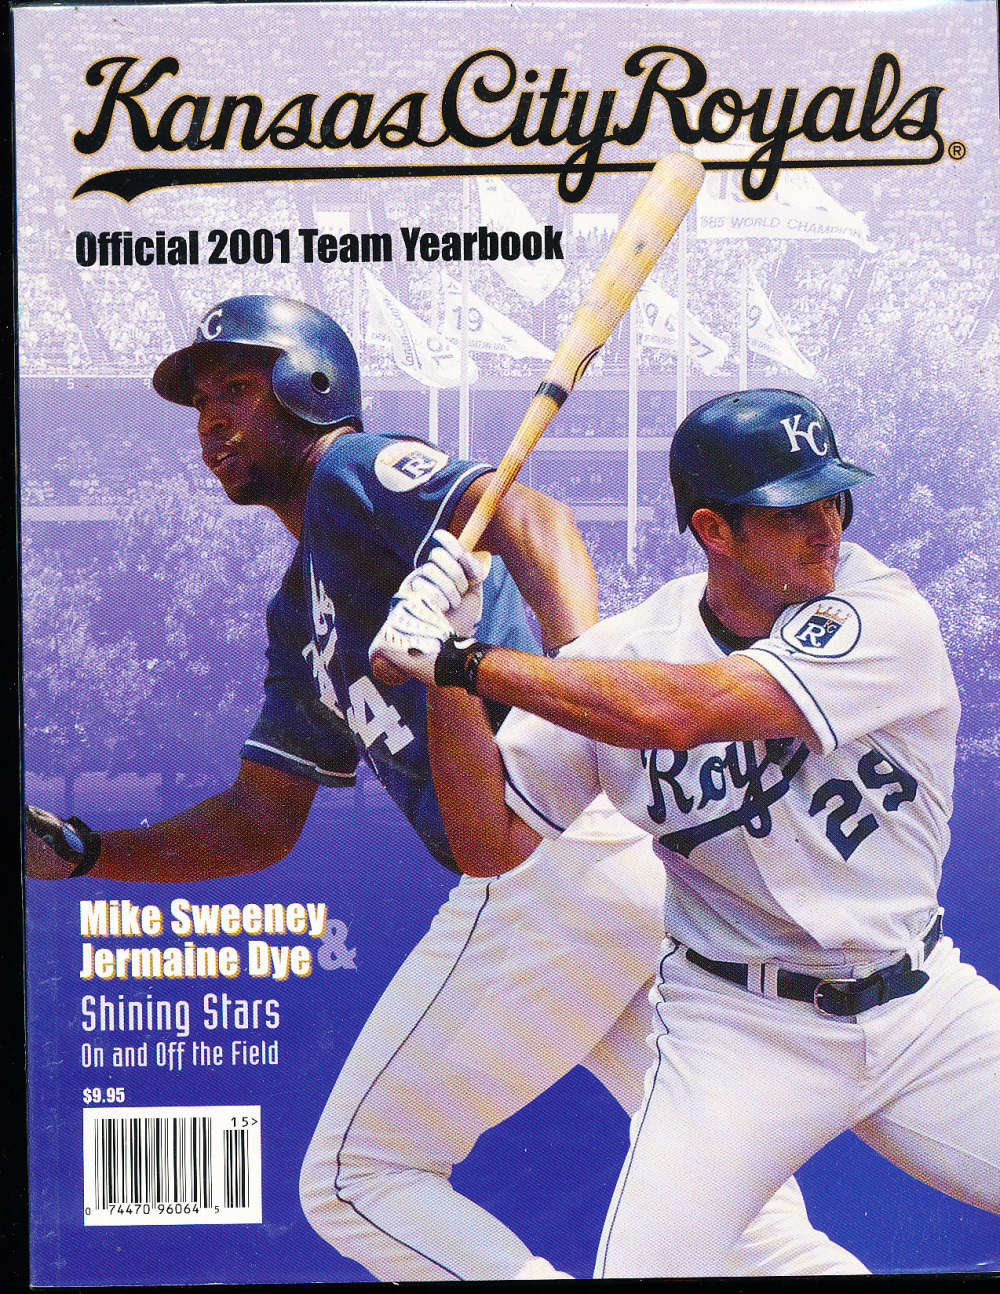 2001 Kansas city Royals baseball yearbook